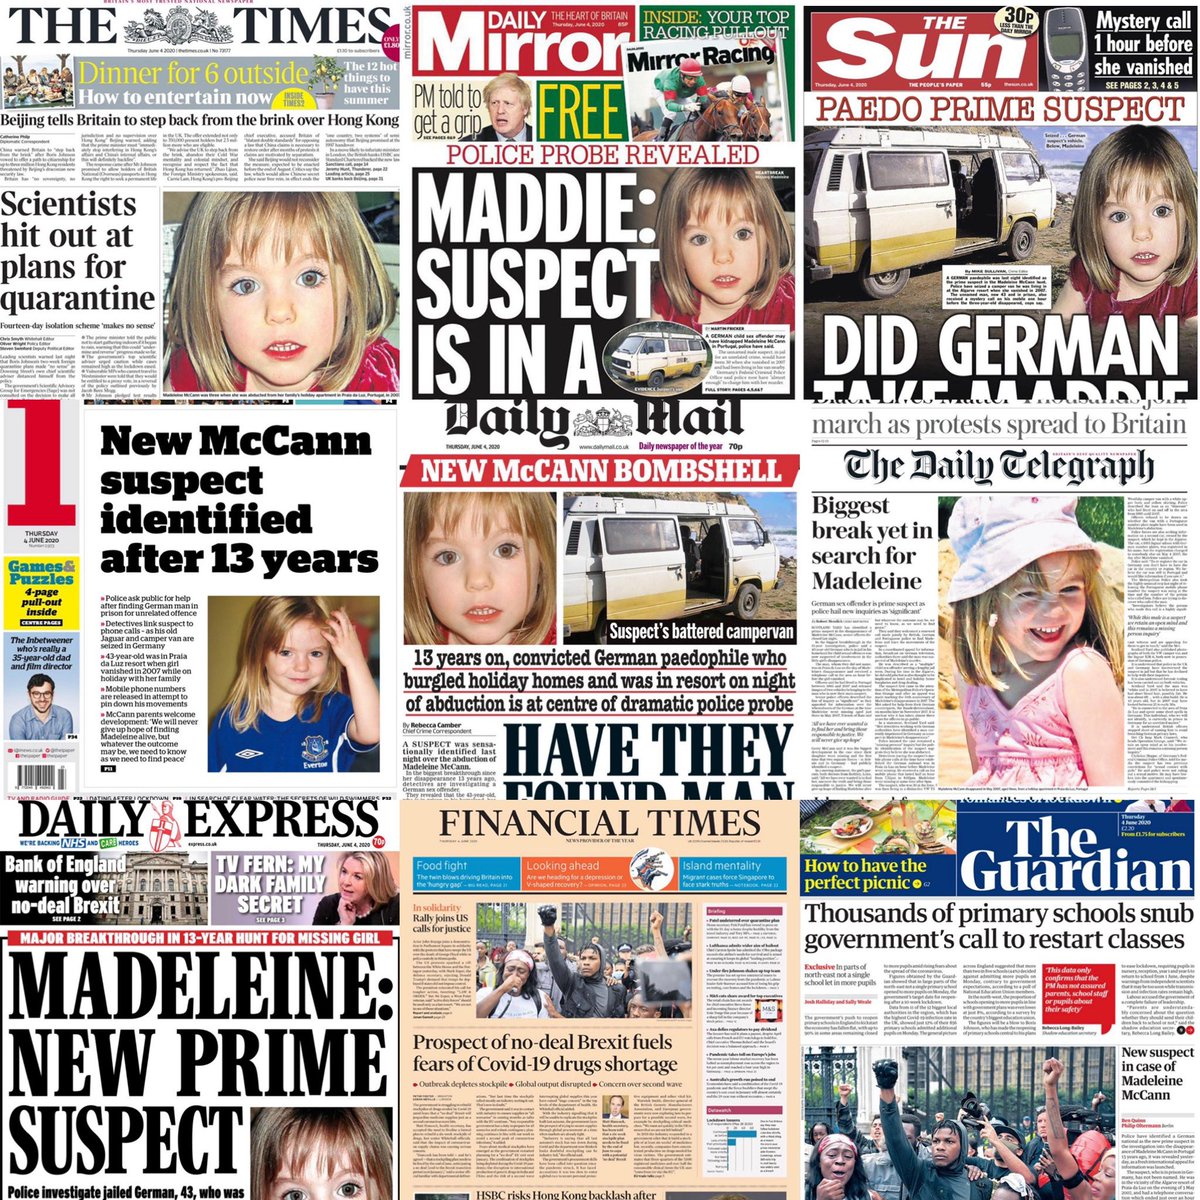 I must be in a supermassive black hole of an echo chamber if these are today's front pages...